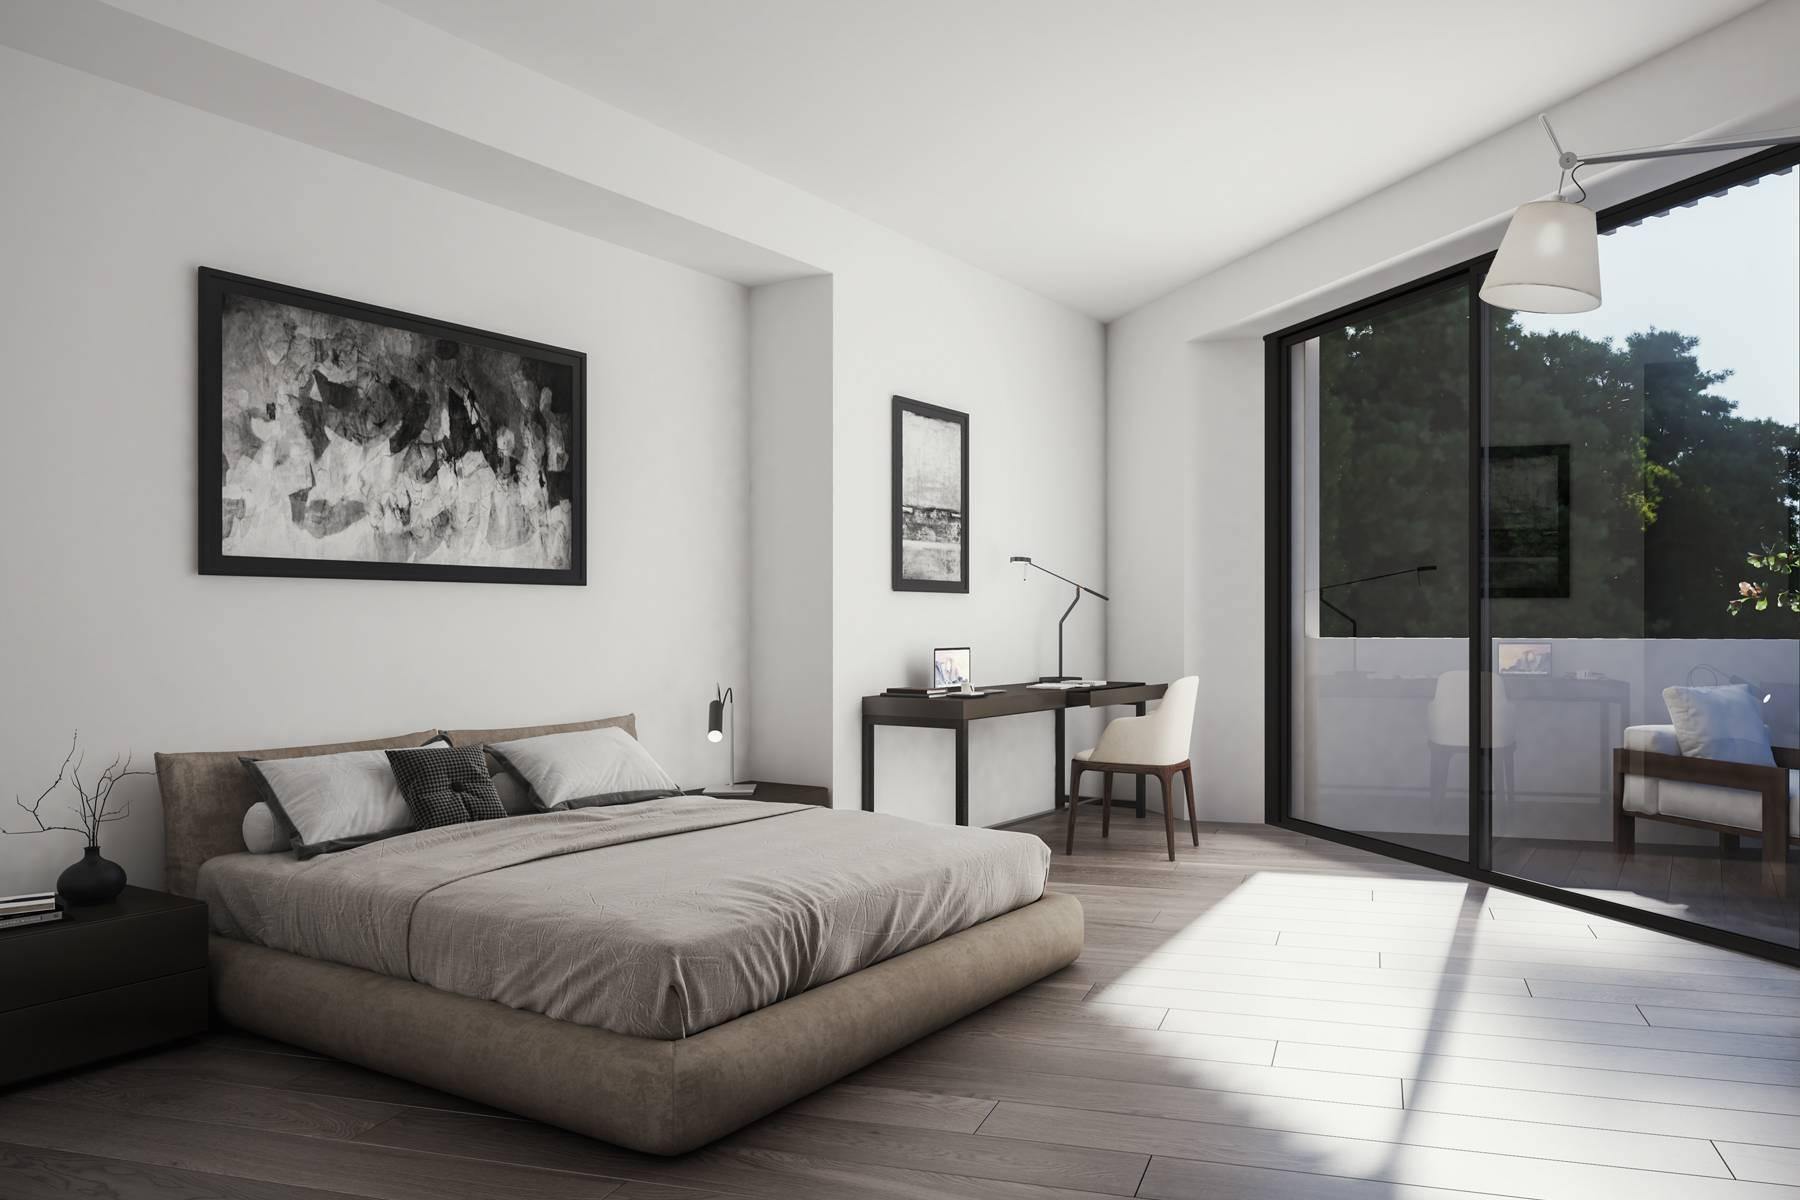 Camilluccia 535: the quiet of the countryside in the heart of Rome - Penthouse - 6